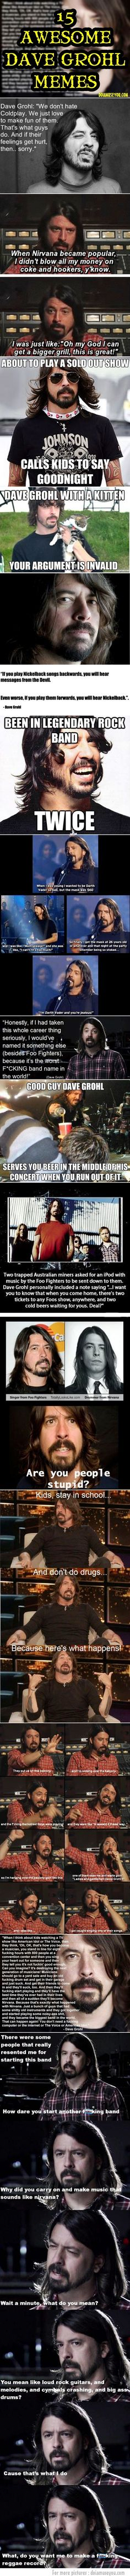 15 Awesome Dave Grohl Memes To encourage ALL artists